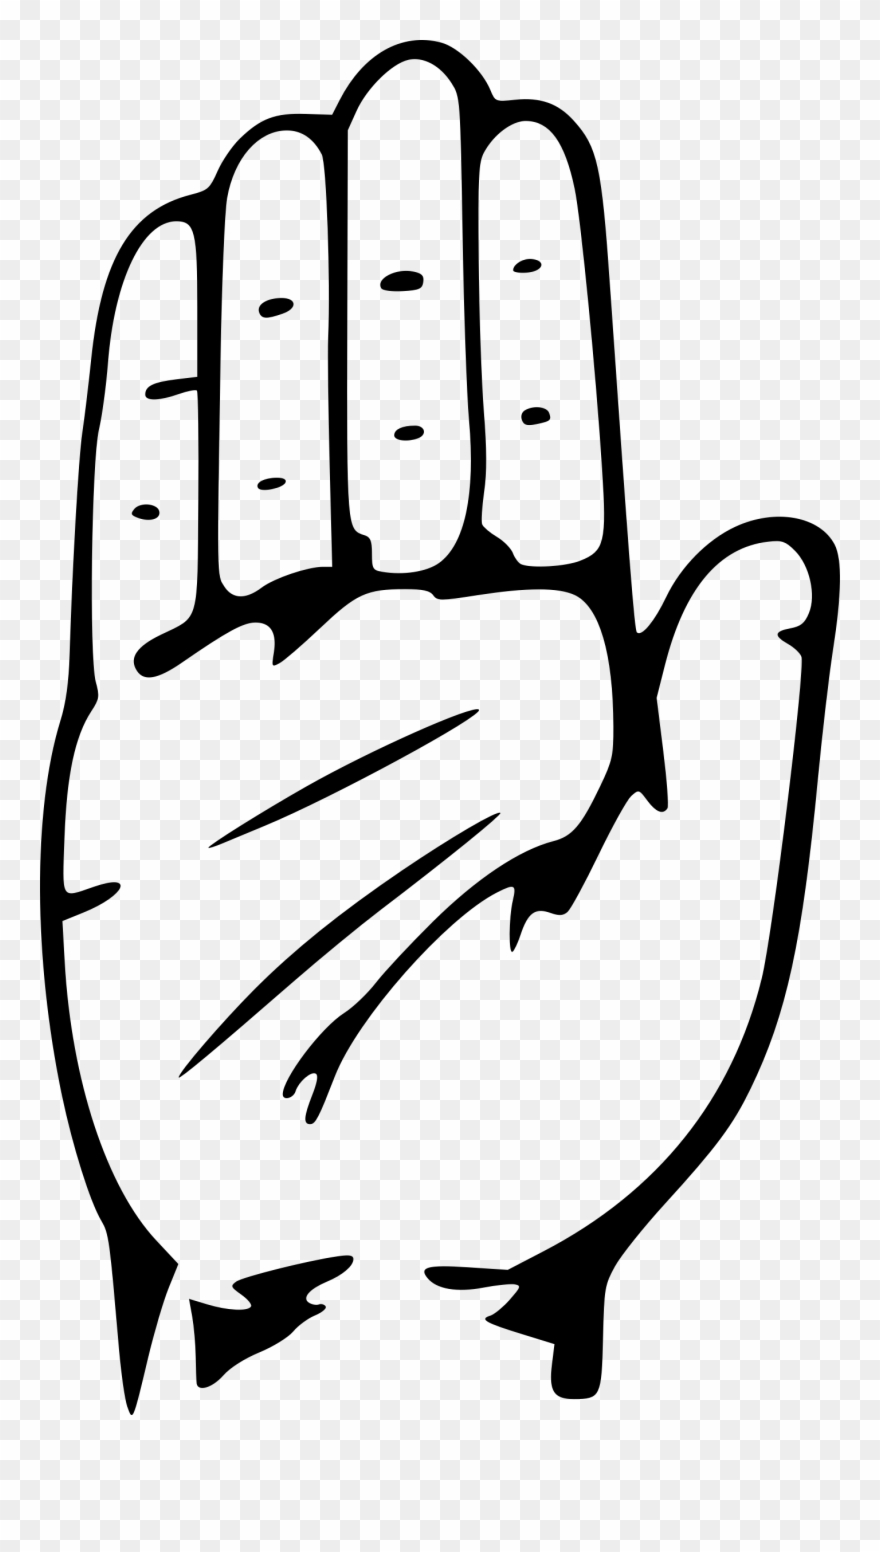 Indian National Congress Png - Right Clipart Congress - Indian National Congress Logo - Png ...